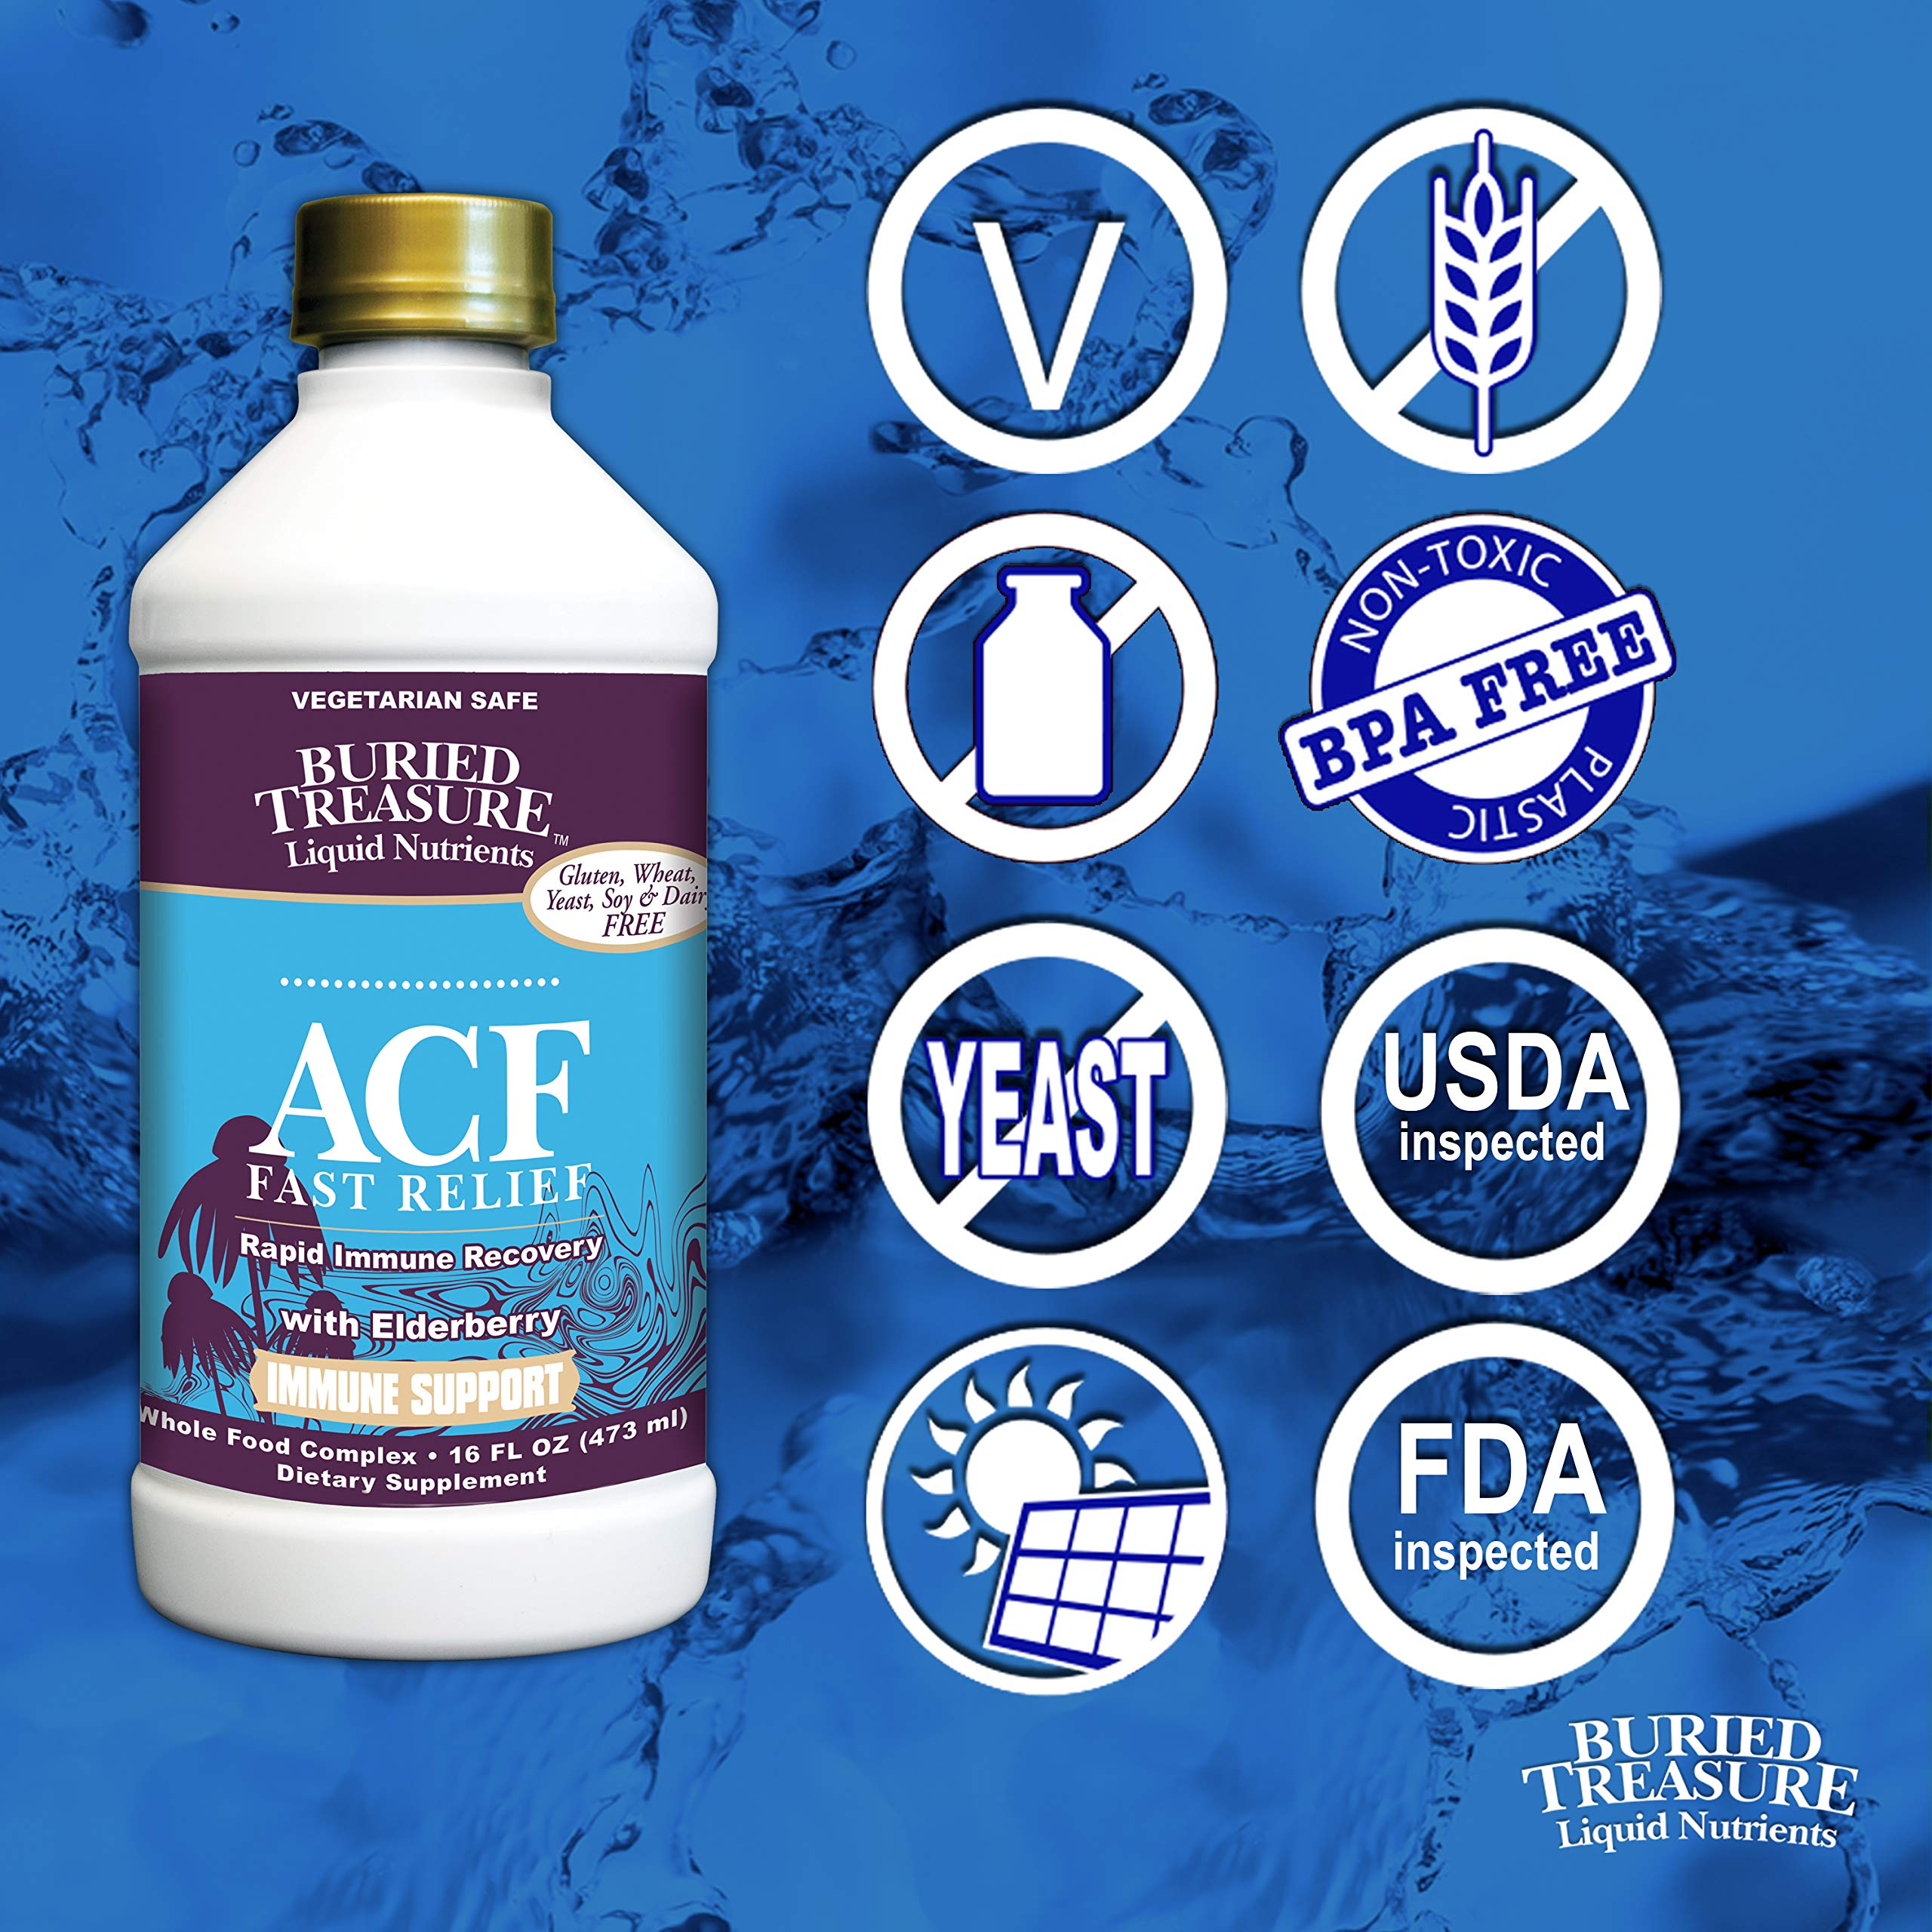 Buried Treasure ACF Fast Relief Rapid Immune Recovery with 1,000 mg Vitamin C, Elderberry, Echinacea and Herbal Blend for Complete Immune Support Dietary Supplement, 16 oz by Buried Treasure